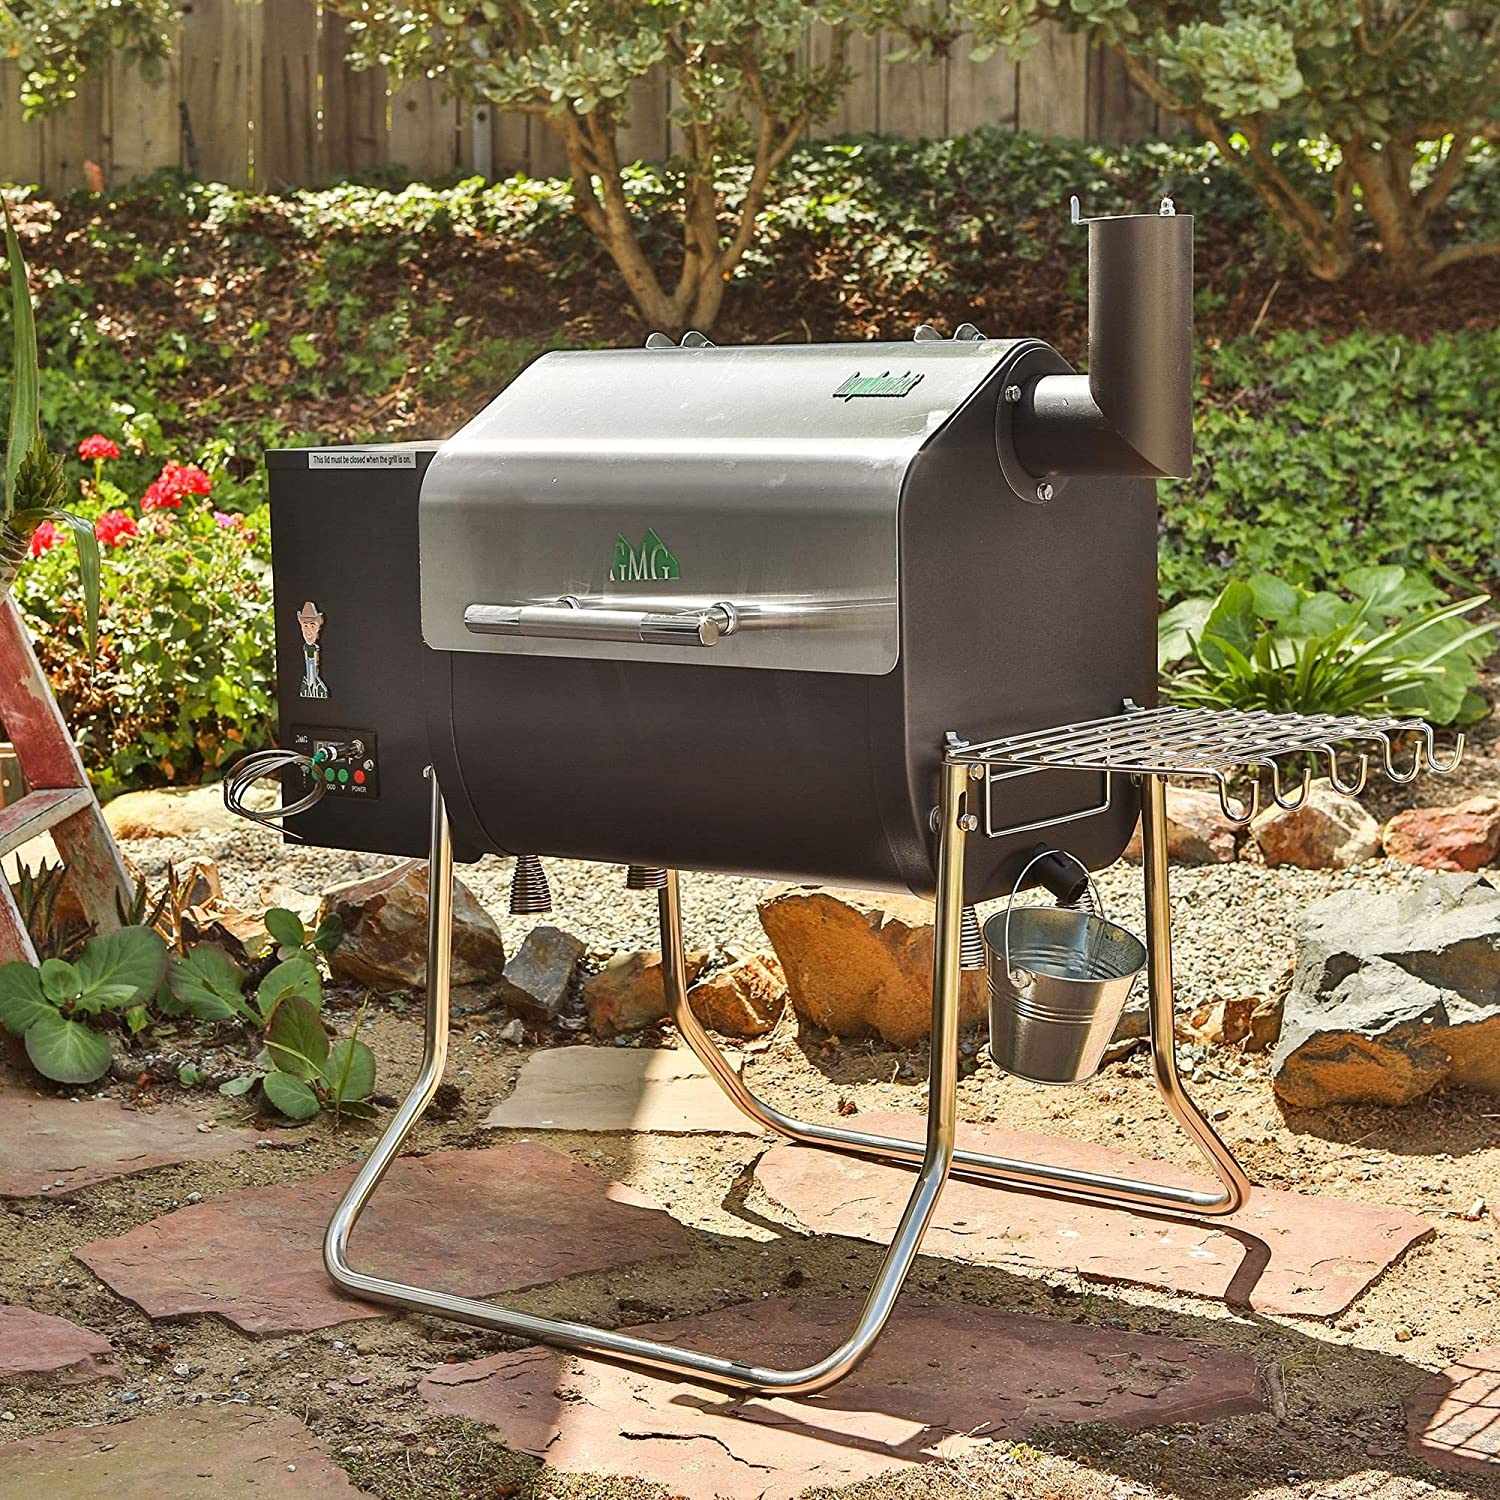 Top 10 Best Pellet Grills in 2020